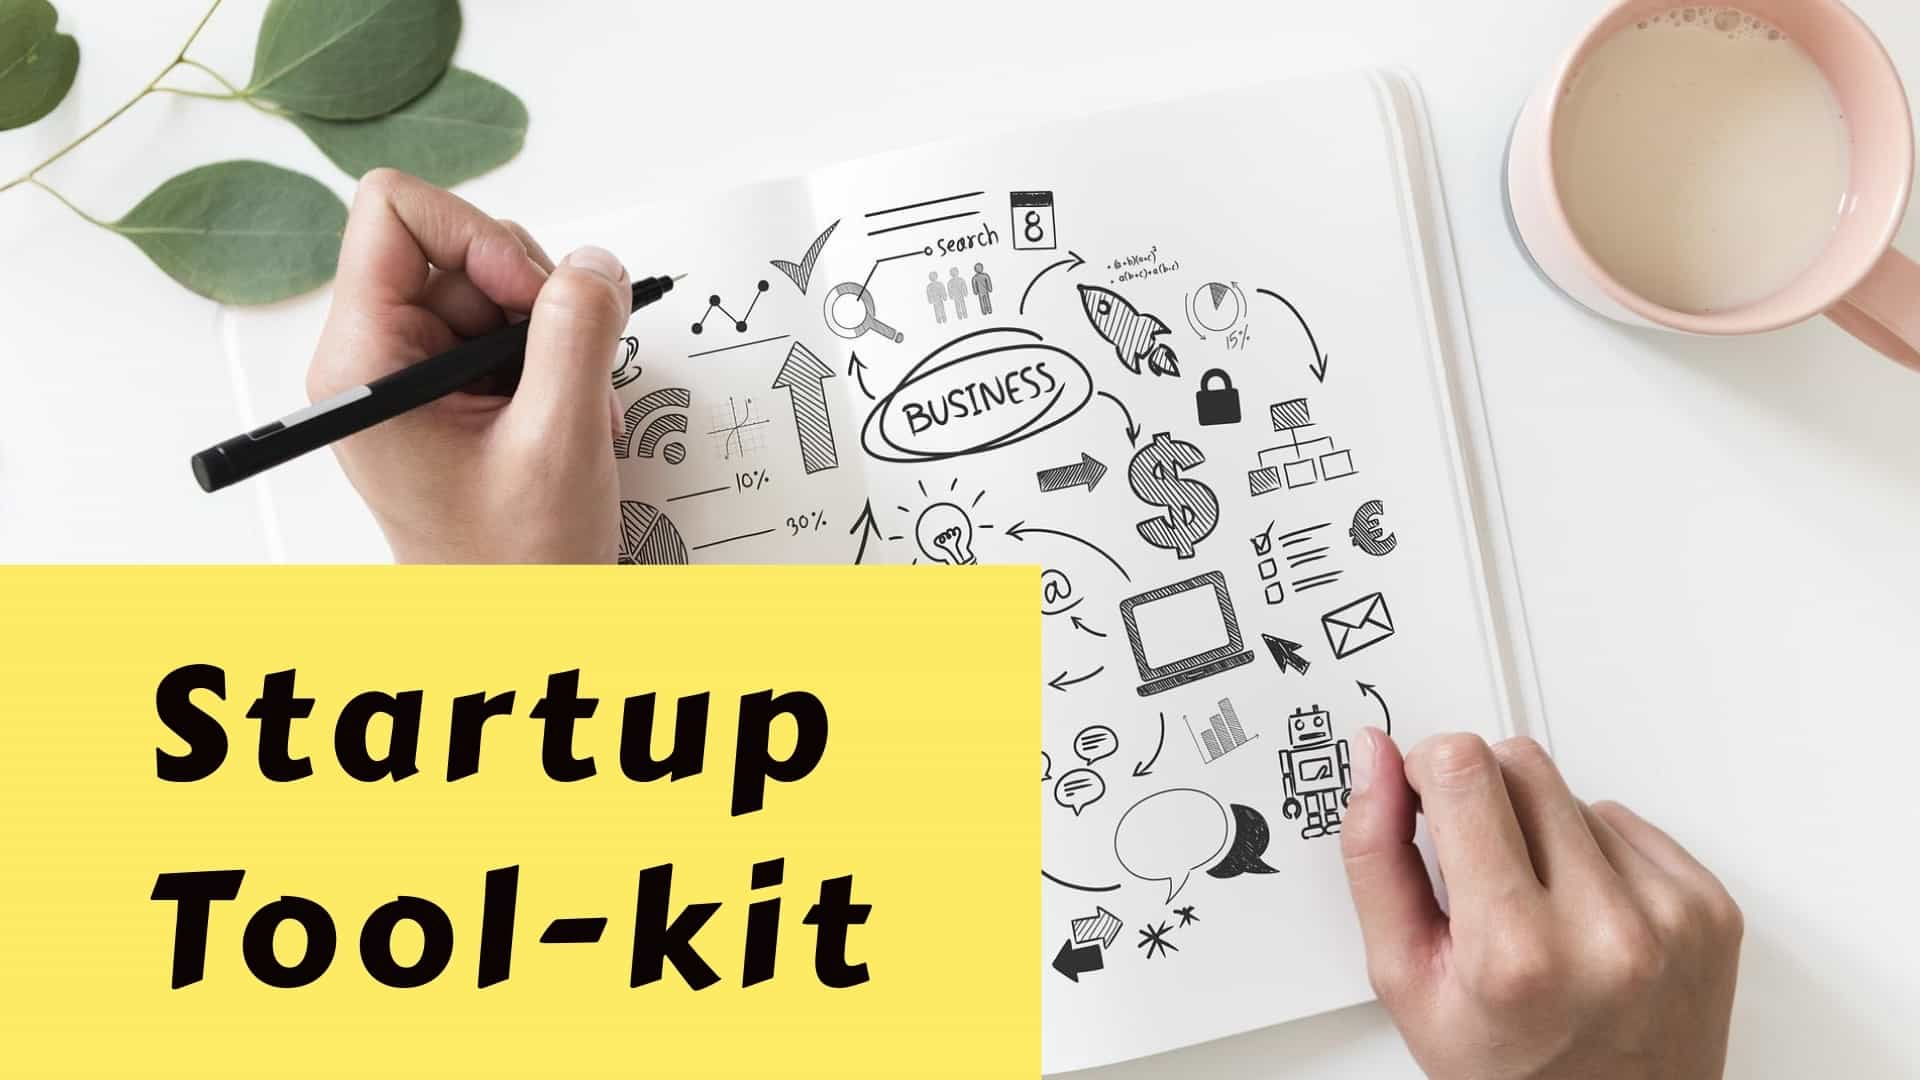 Startup Tool-kit For Young Entrepreneurs - Discover Vibe